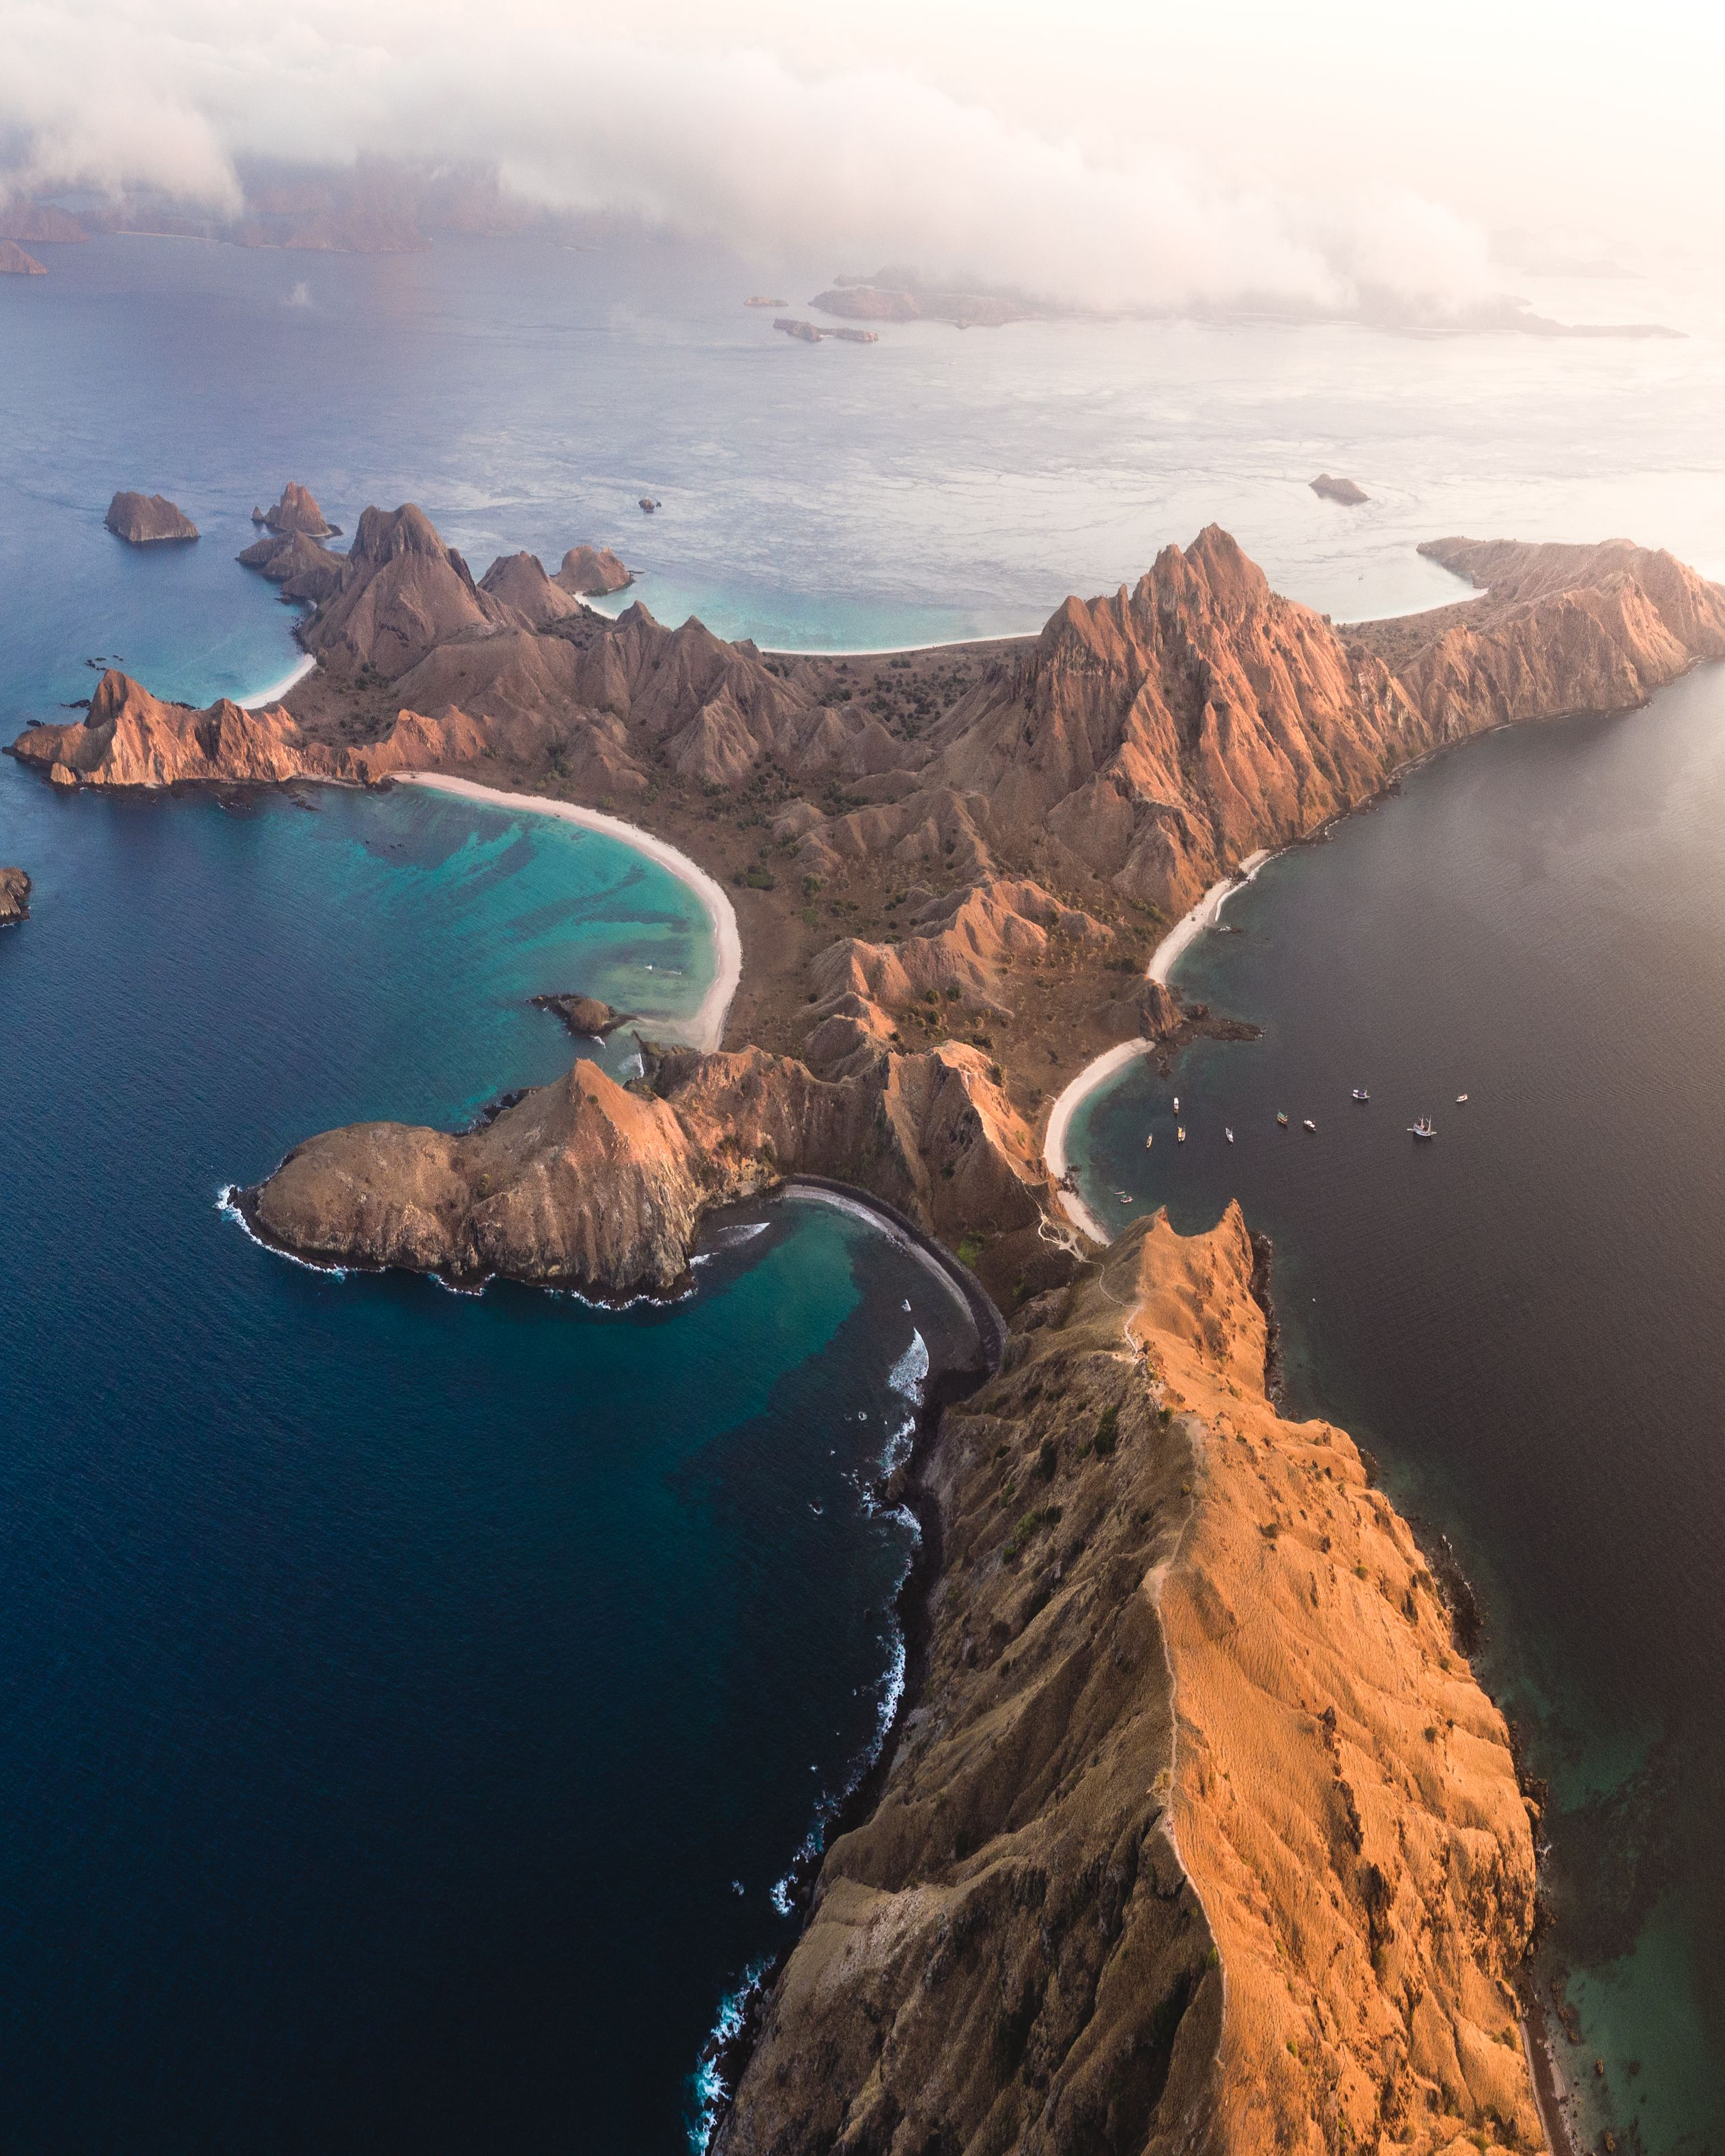 Empress Ii Komodo Diving Cruises Indonesia: Padar Island, Komodo National Park, Flores Island